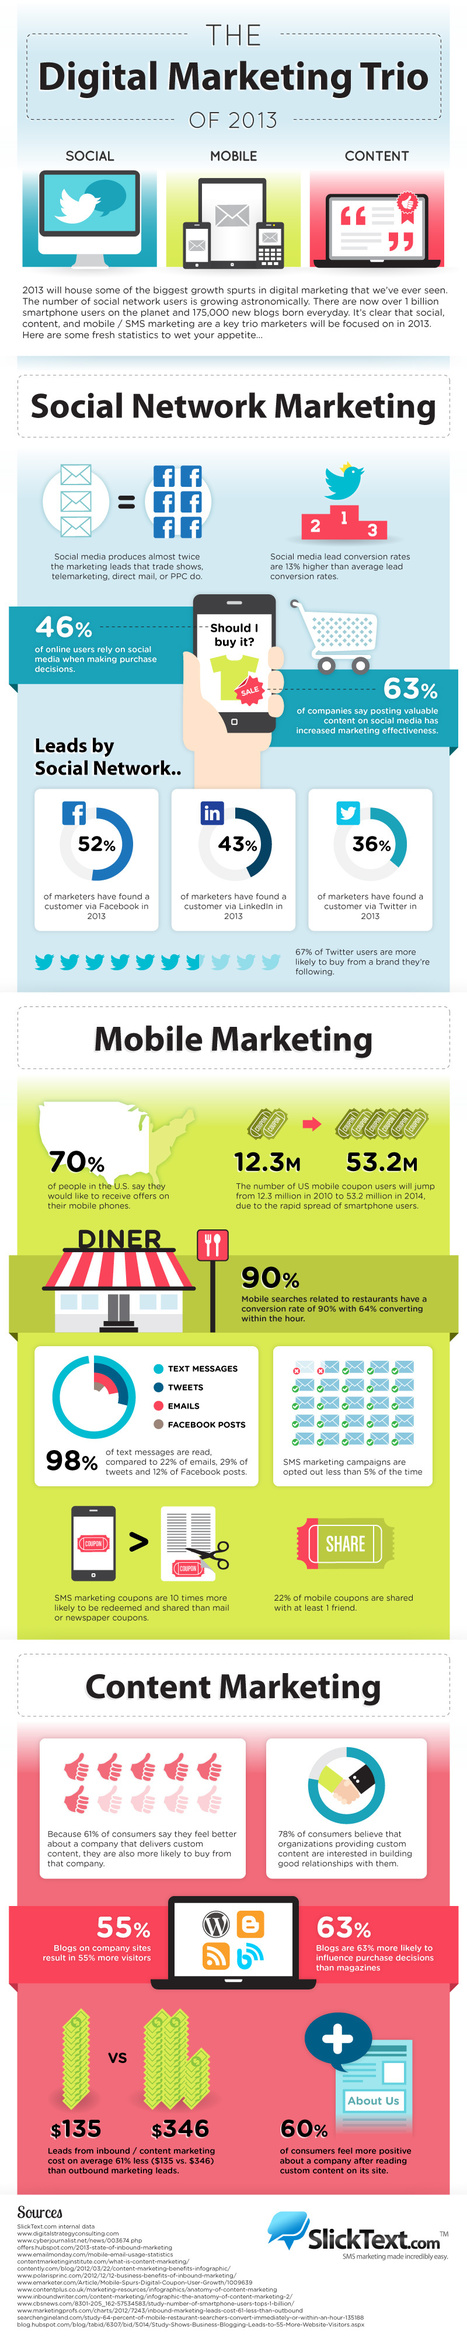 The Digital Marketing Trio Of 2013 [Infographic] | Wepyirang | Scoop.it